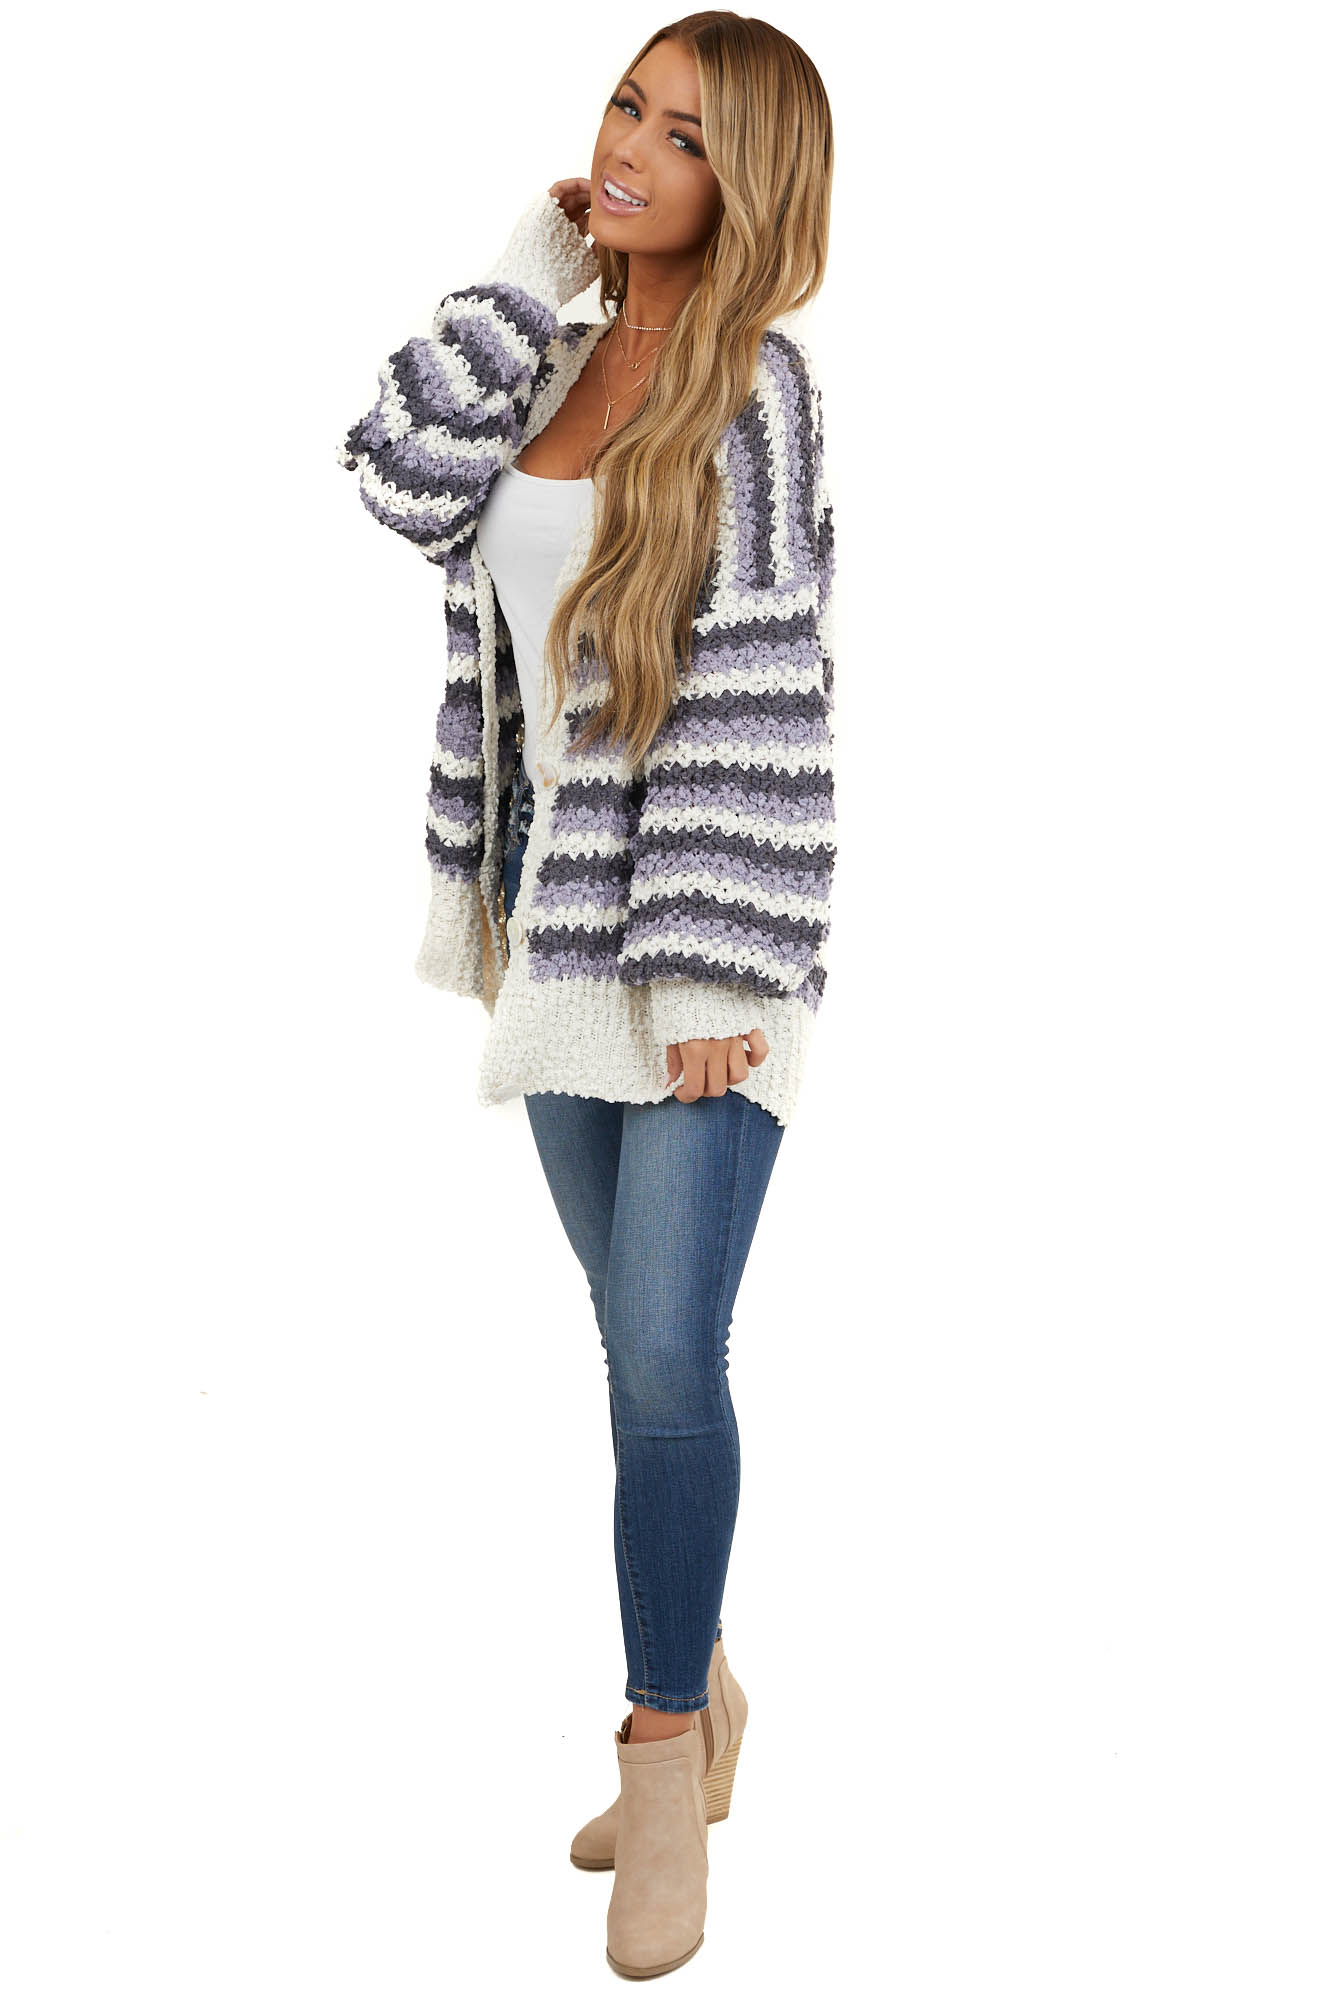 Charcoal and Periwinkle Chunky Knit Button Up Cardigan